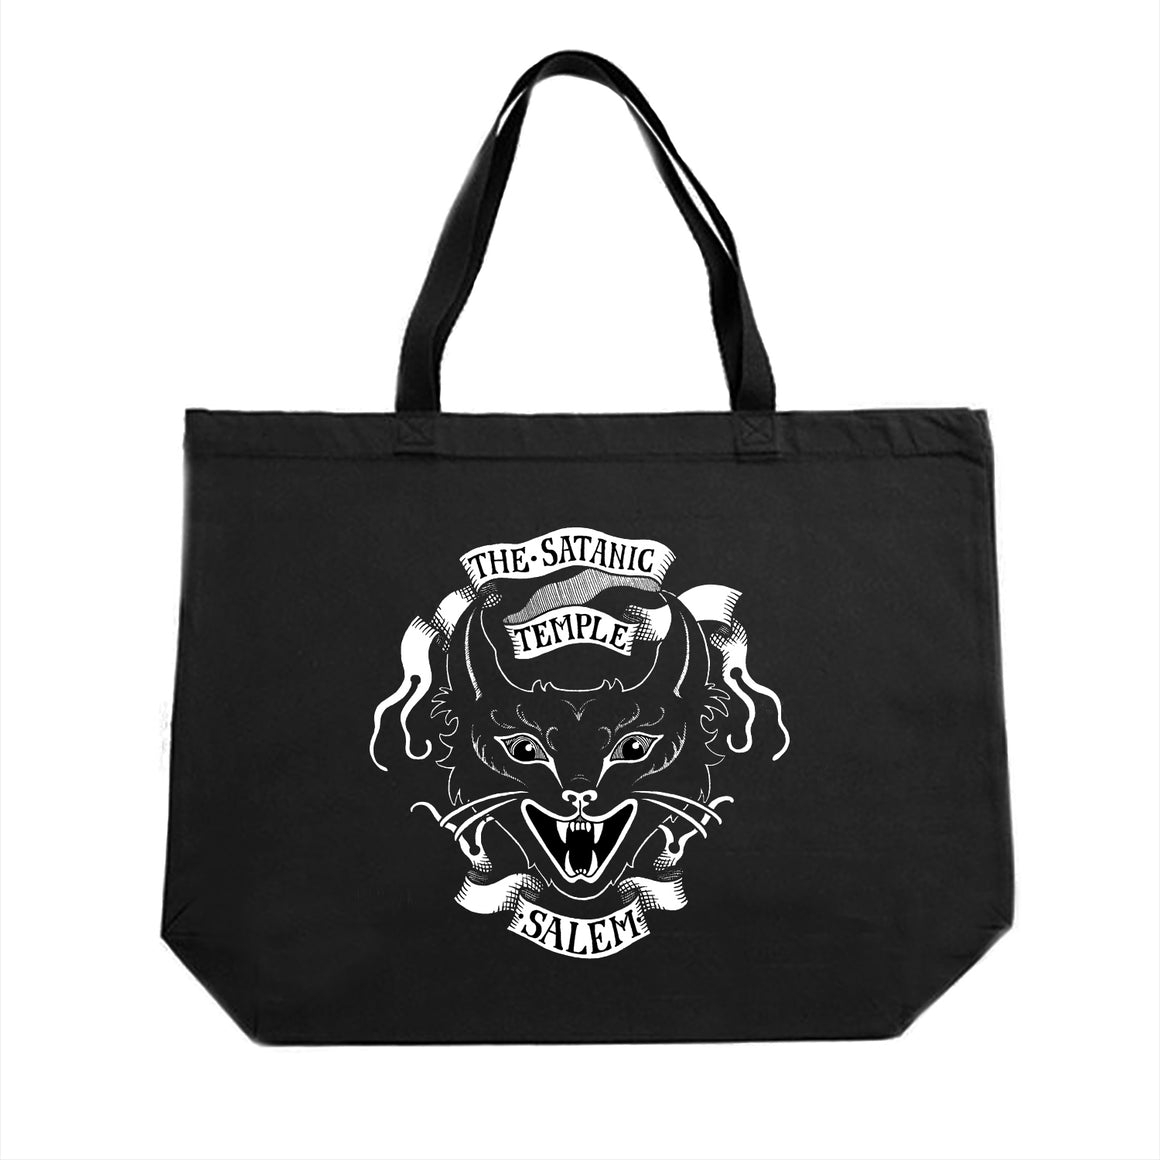 TST Devil Kitty Large Tote Bag designed by Alexander Lex Corey